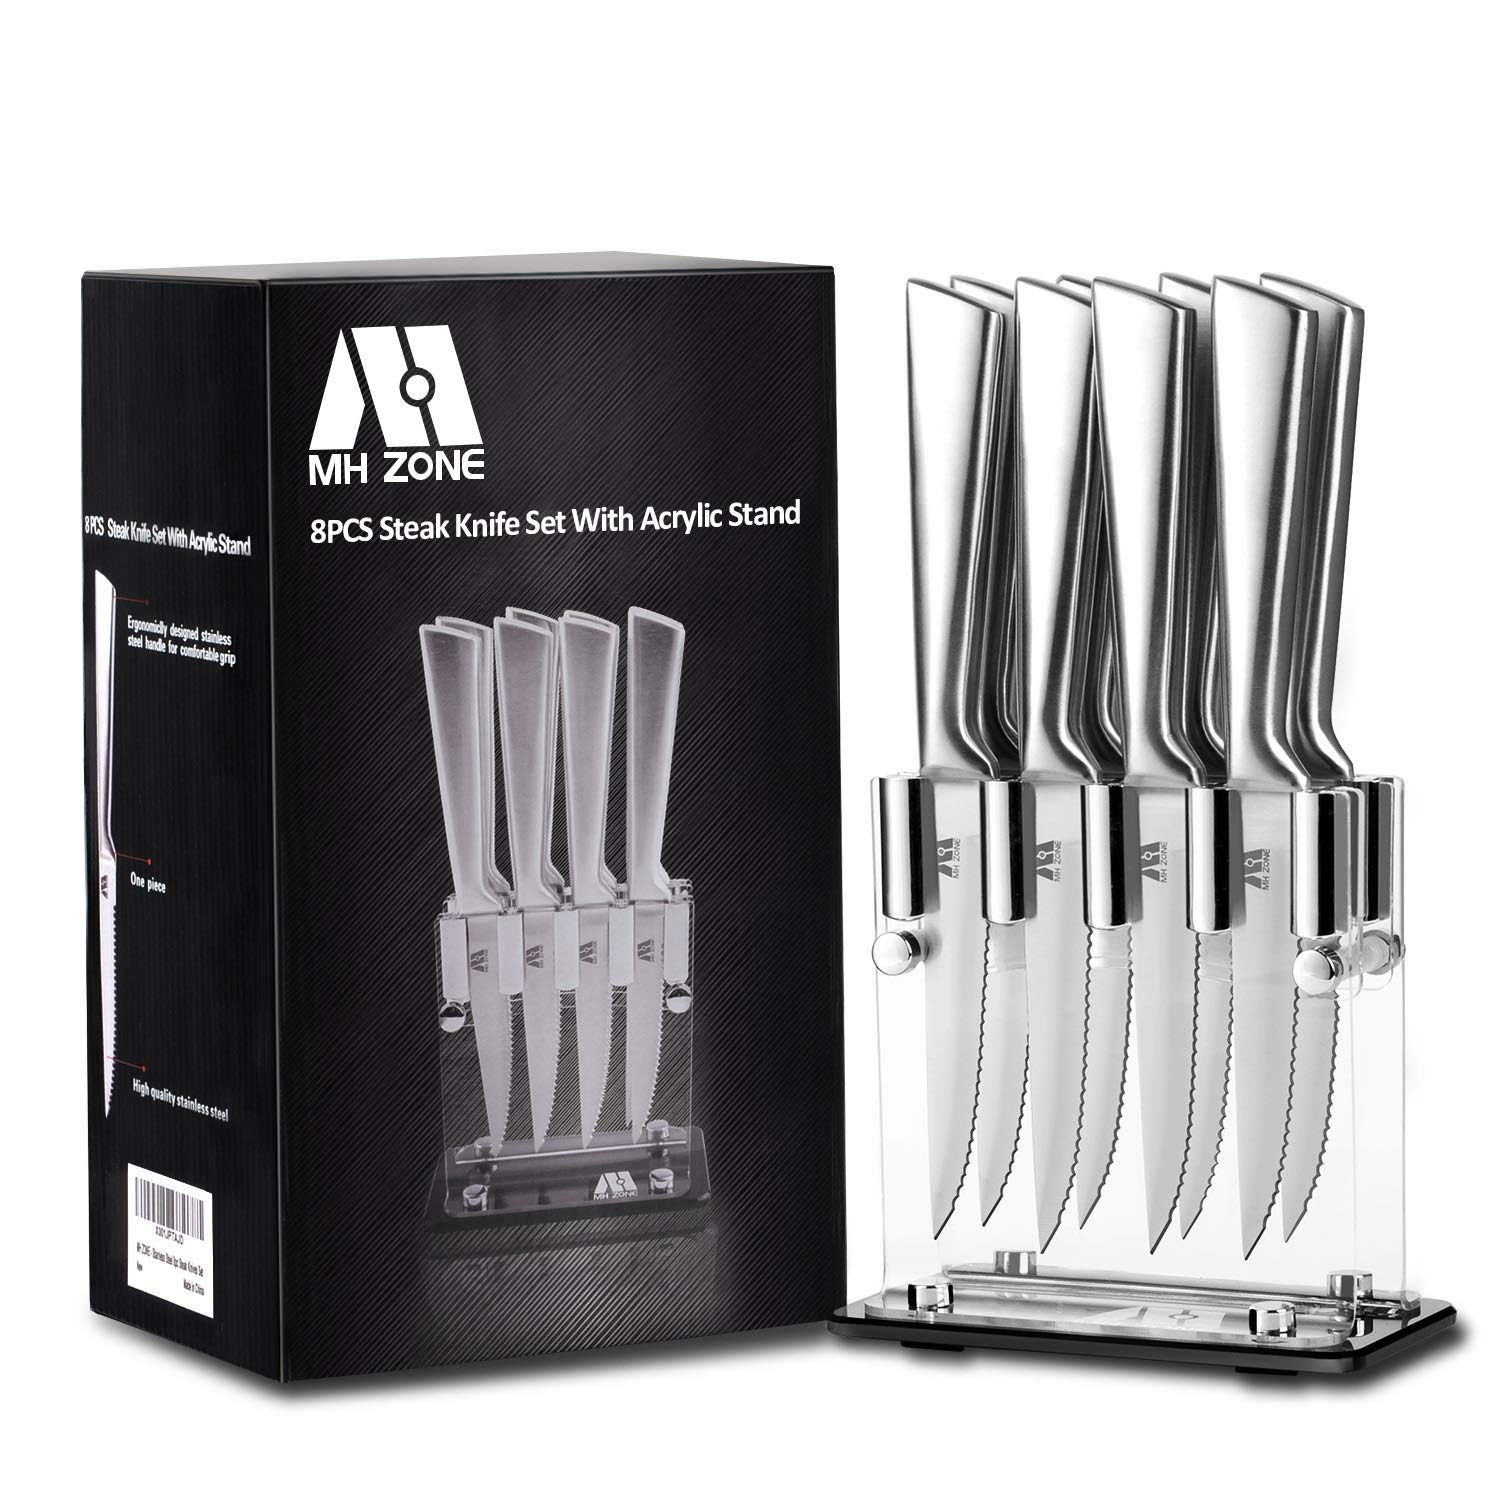 Steak Knife Set, MH ZONE Premium Stainless Steel Steak Knife Set of 8 with Acrylic Block, Perfect Gift by M MH ZONE